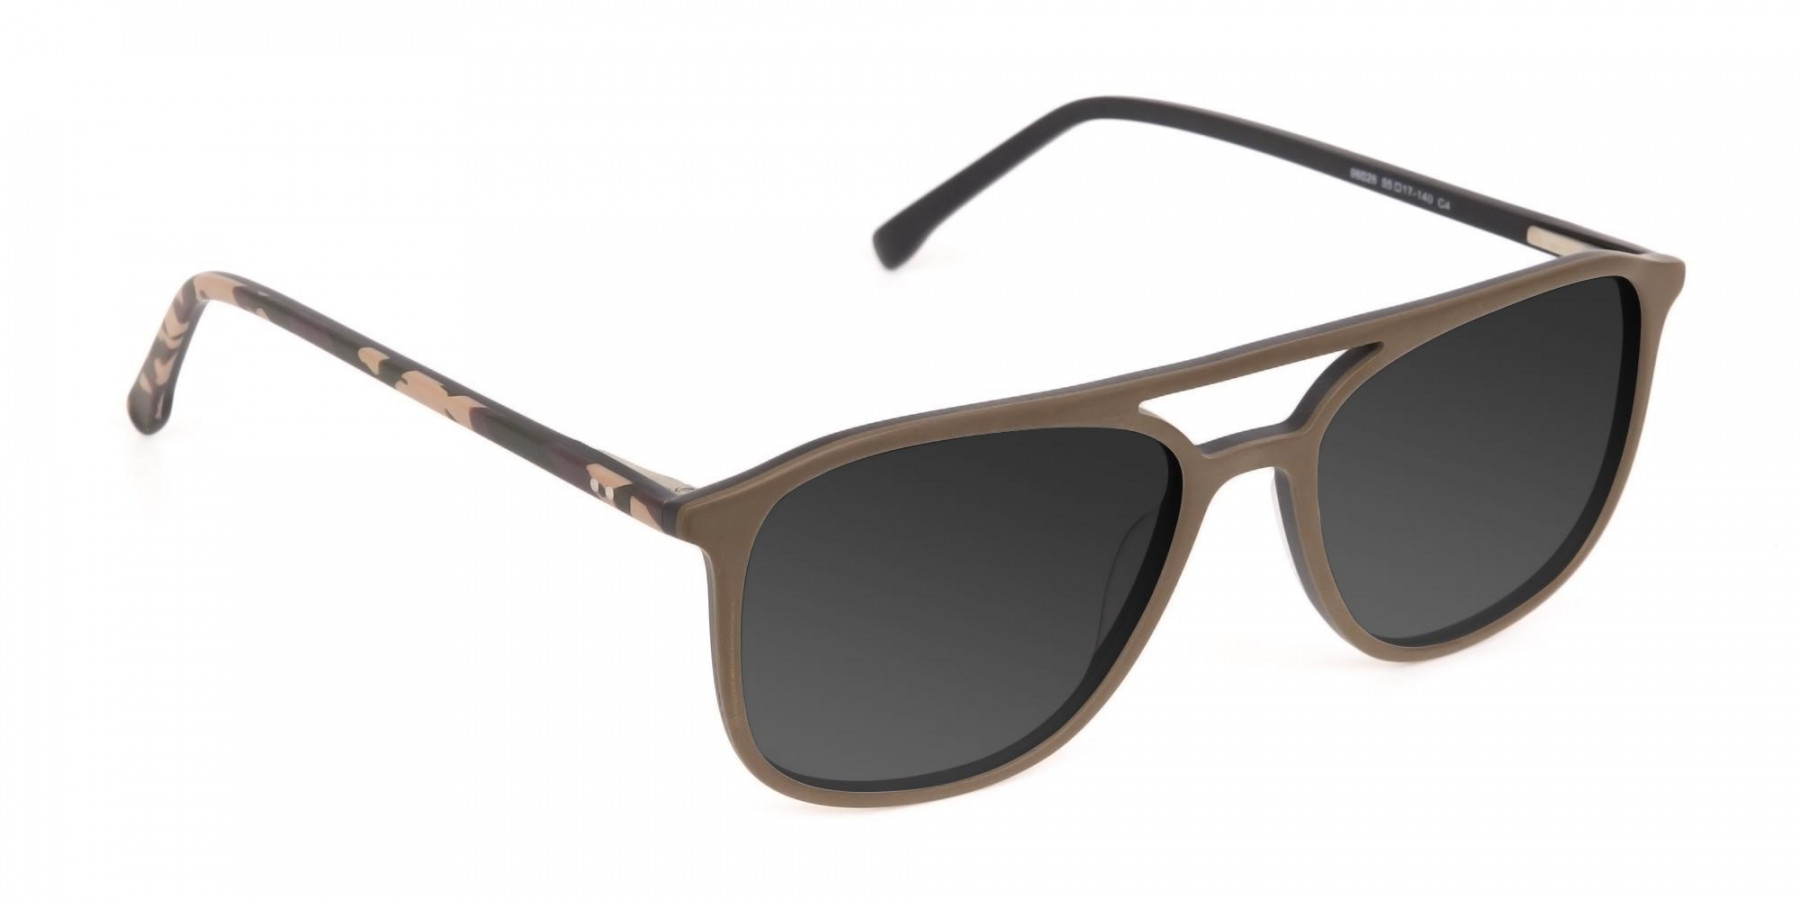 Brown Frame Sunglasses with Dark Grey Tint - 3